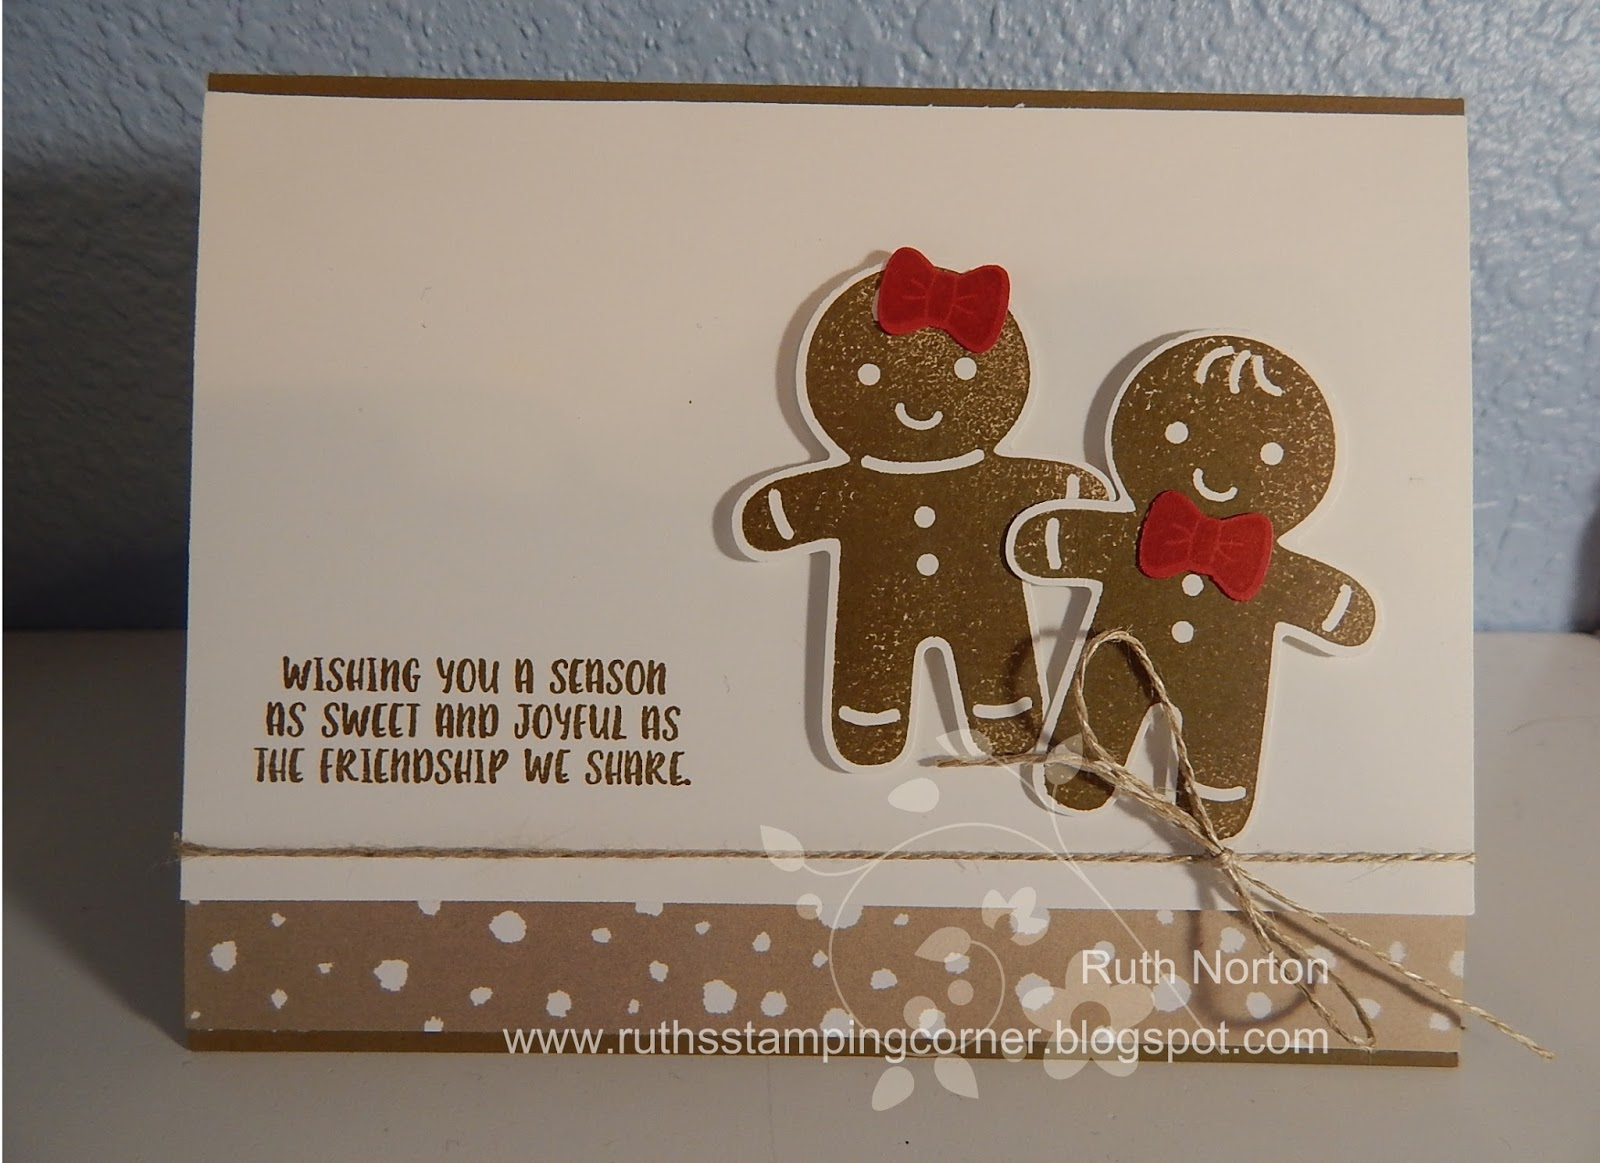 Ruth's Stamping Corner: Cookie Cutter Christmas